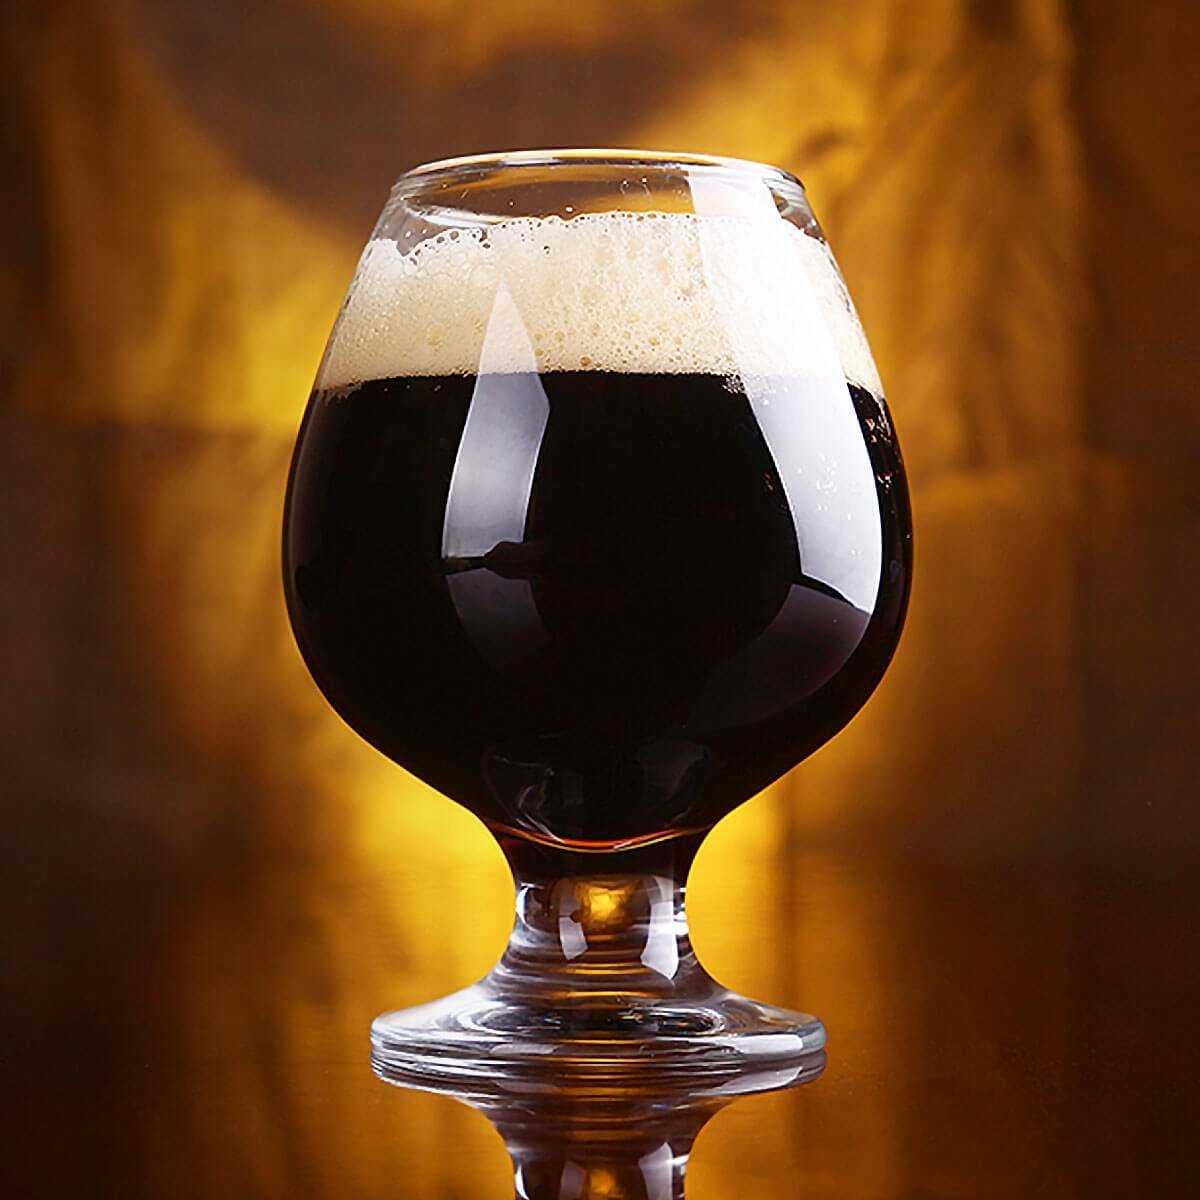 Russian Imperial Stout in a Snifter